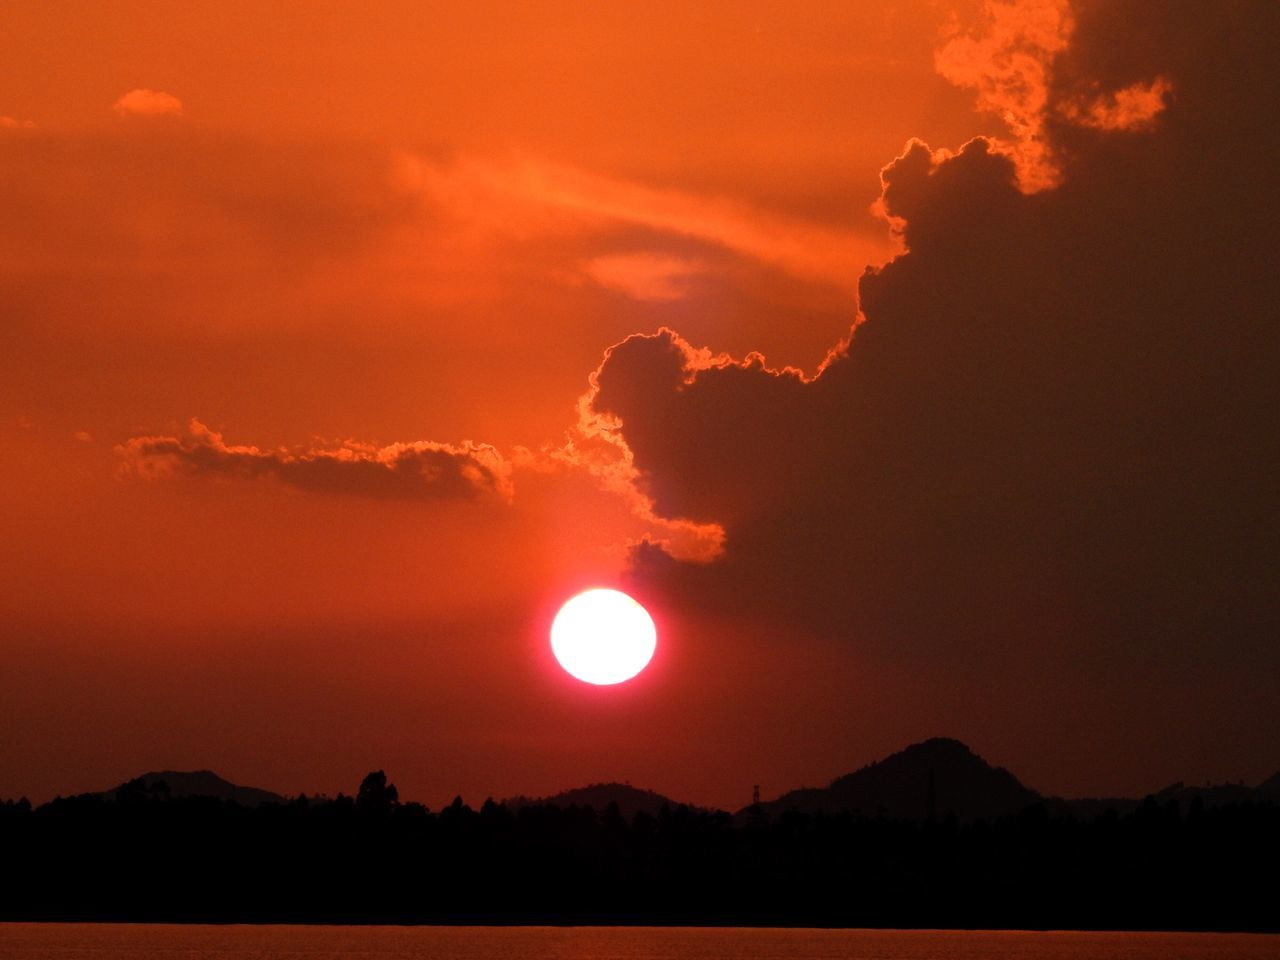 Sunset Scenics Beauty In Nature Nature Orange Color Tranquility Sky Tranquil Scene Sun Moon Outdoors Silhouette No People Idyllic Dramatic Sky Landscape Mountain Astronomy